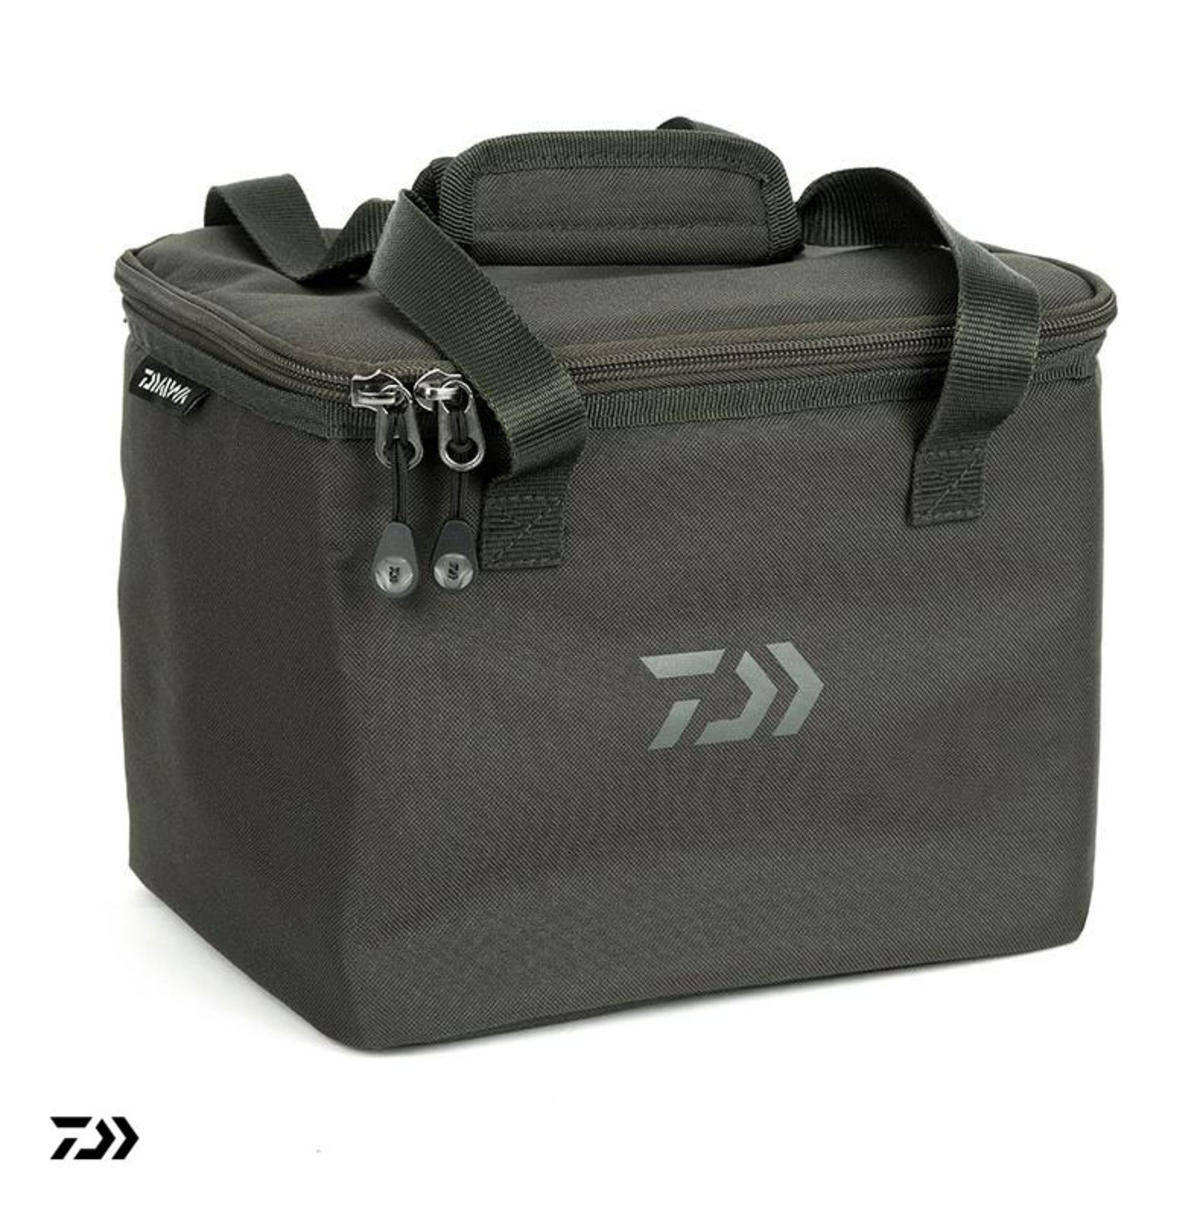 New Daiwa Infinity System Large Accessory Cool Pouch - ISACP